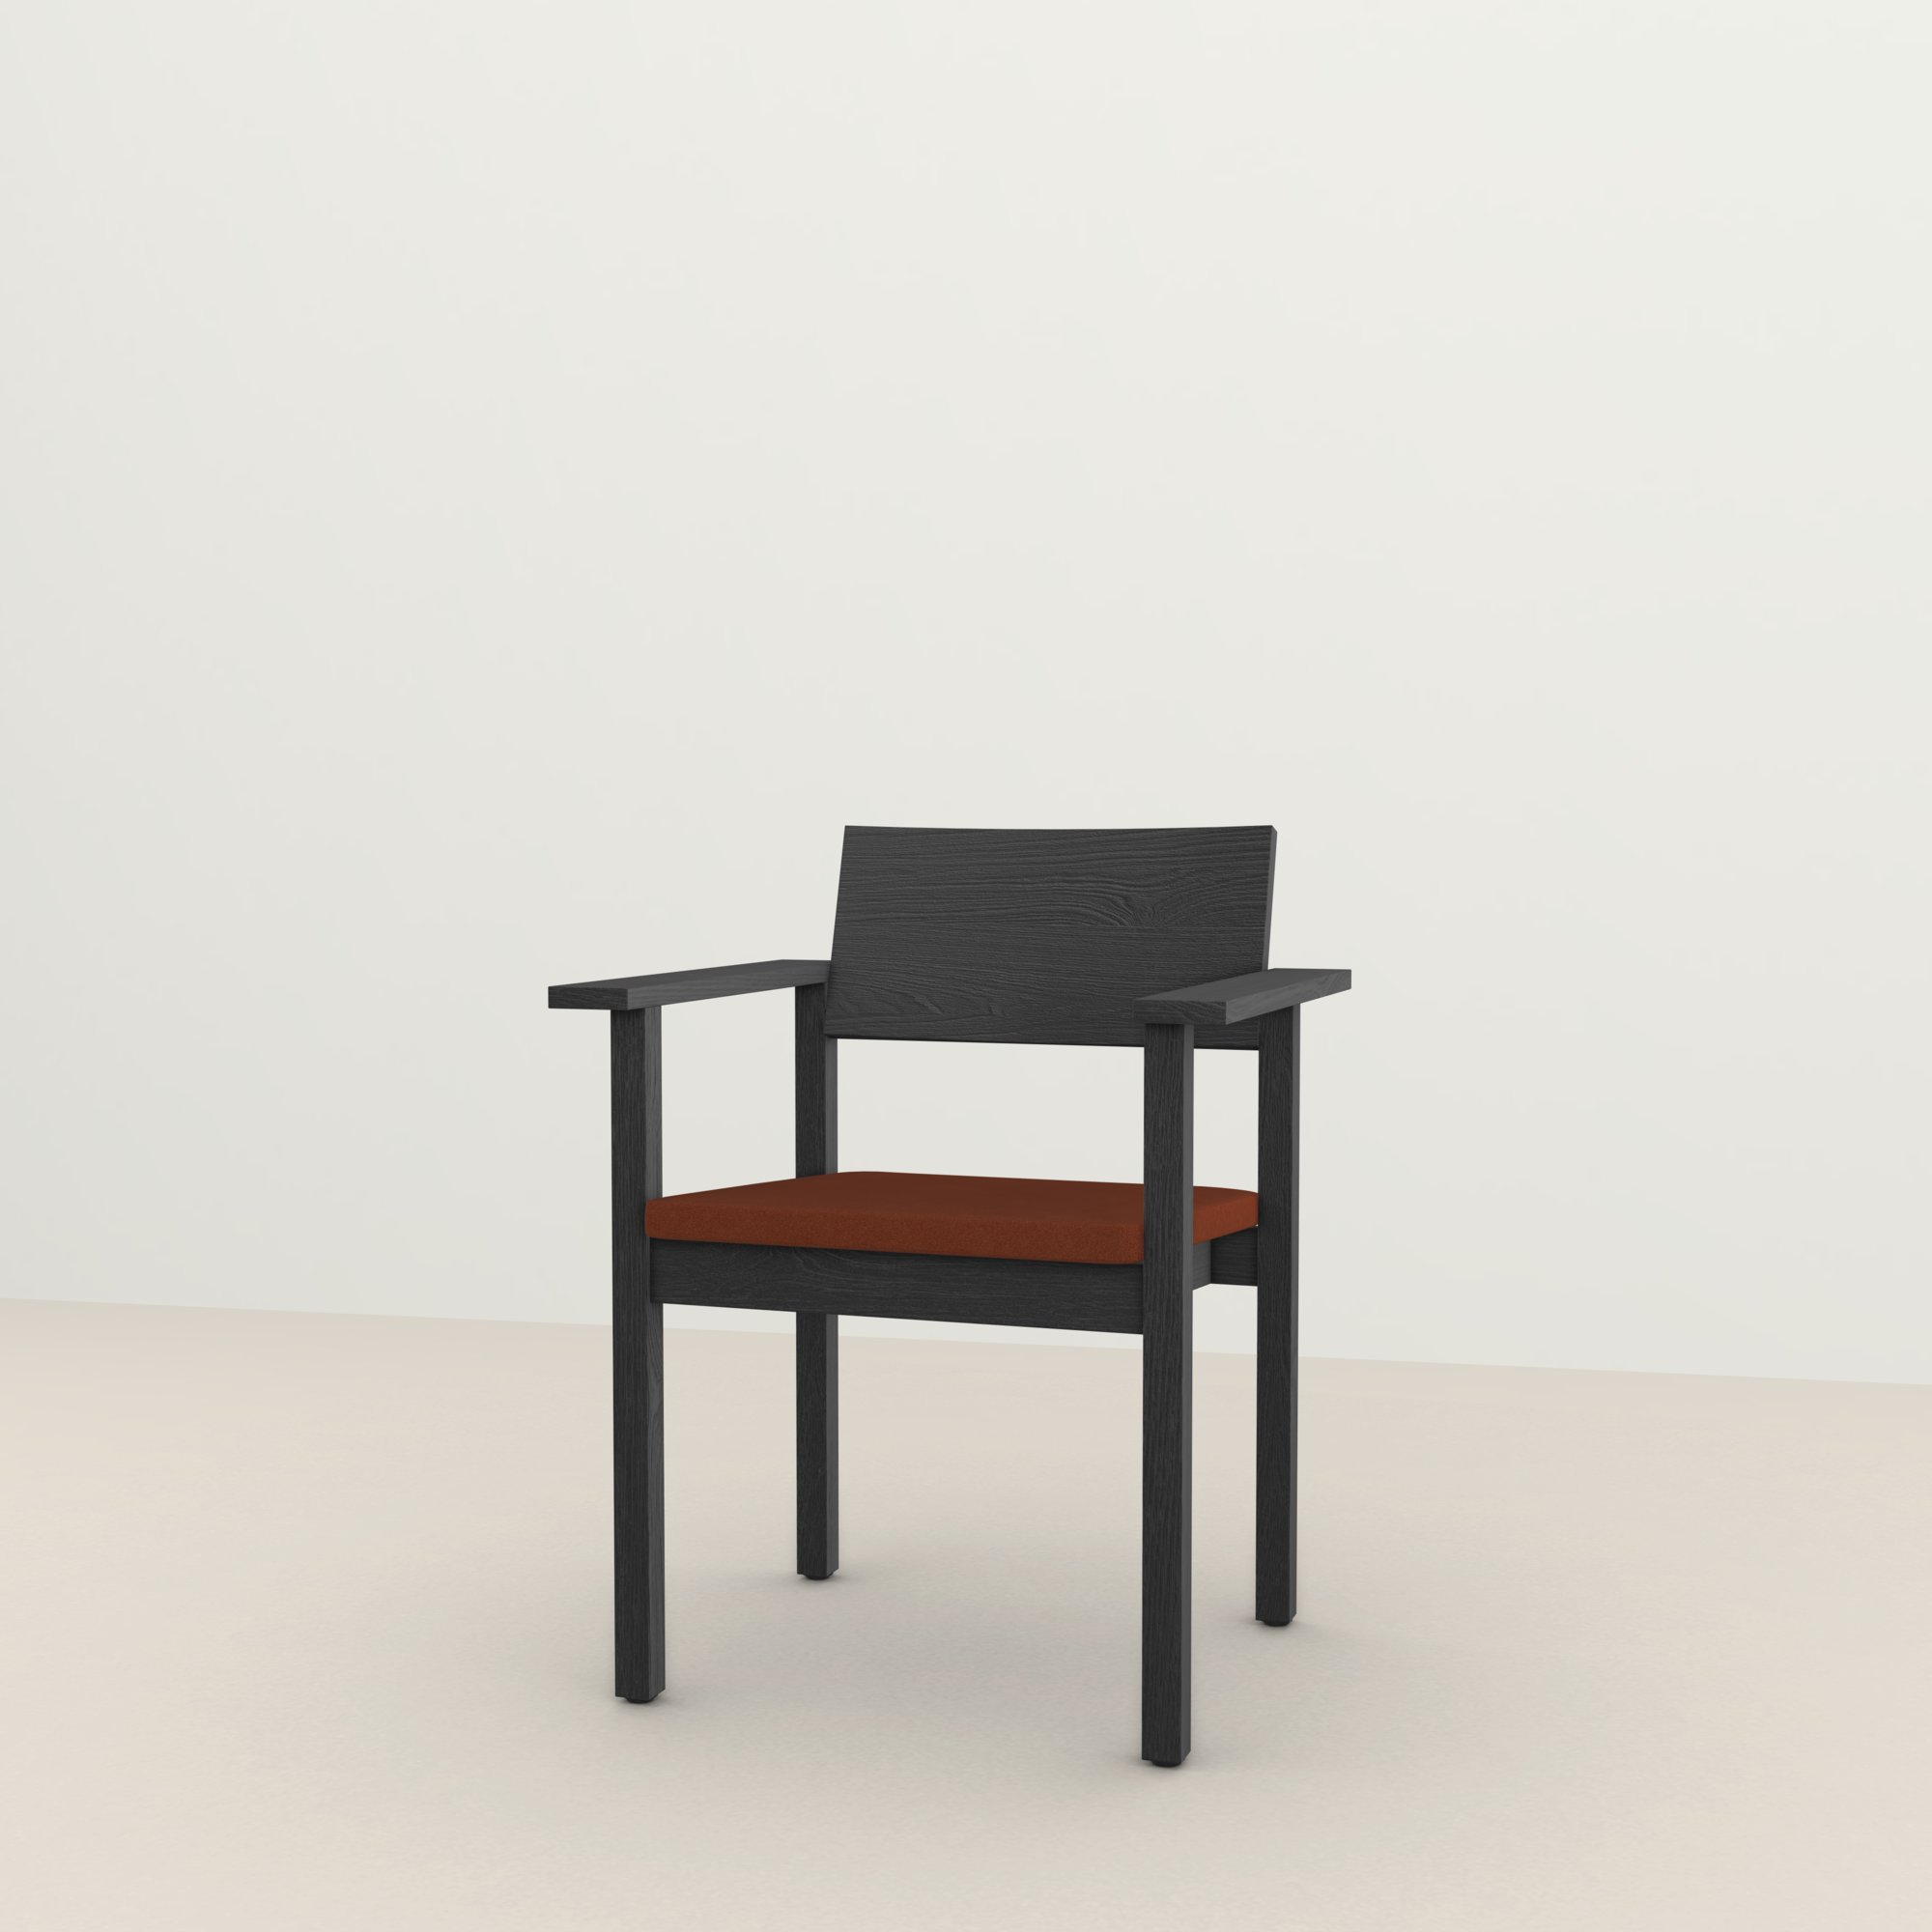 Design eetkamerstoel | Base Chair with armrest upholstered tonus4 474 | Studio HENK |